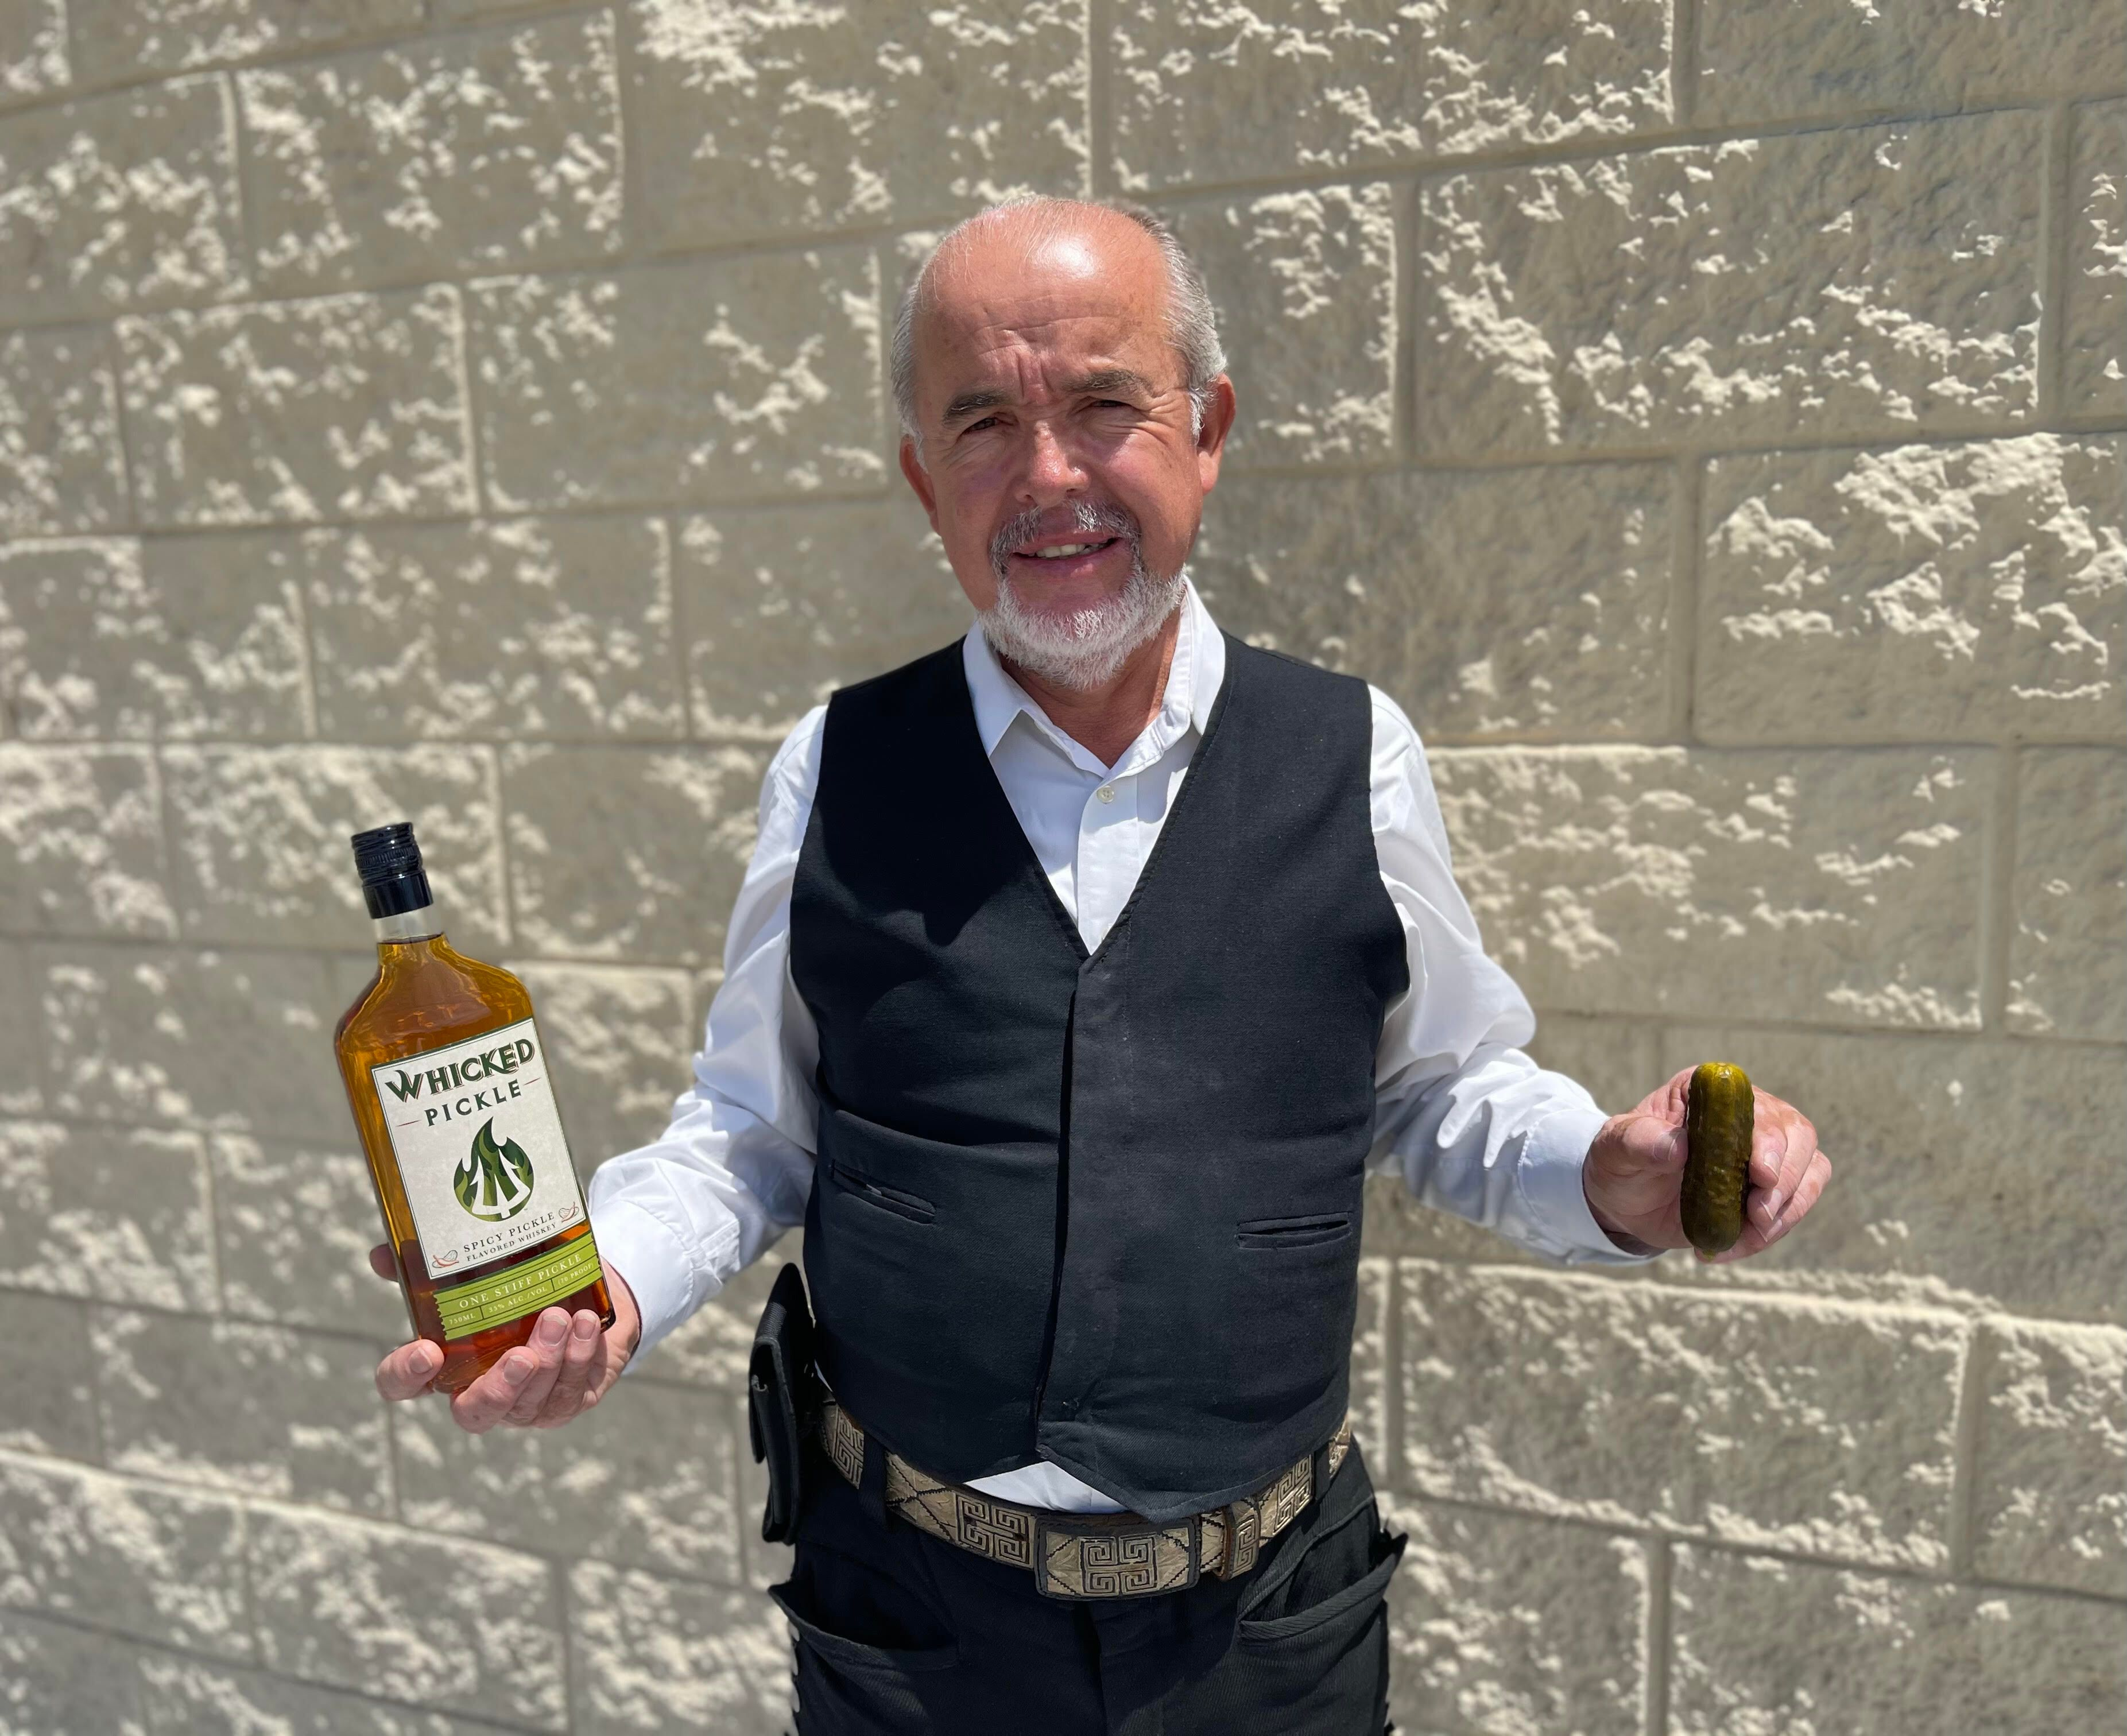 """Want to take a shot at giving your dad whiskey? This <a href=""""https://shotsbox.com/product/whicked-pickle-spicy-pickle-flavor"""